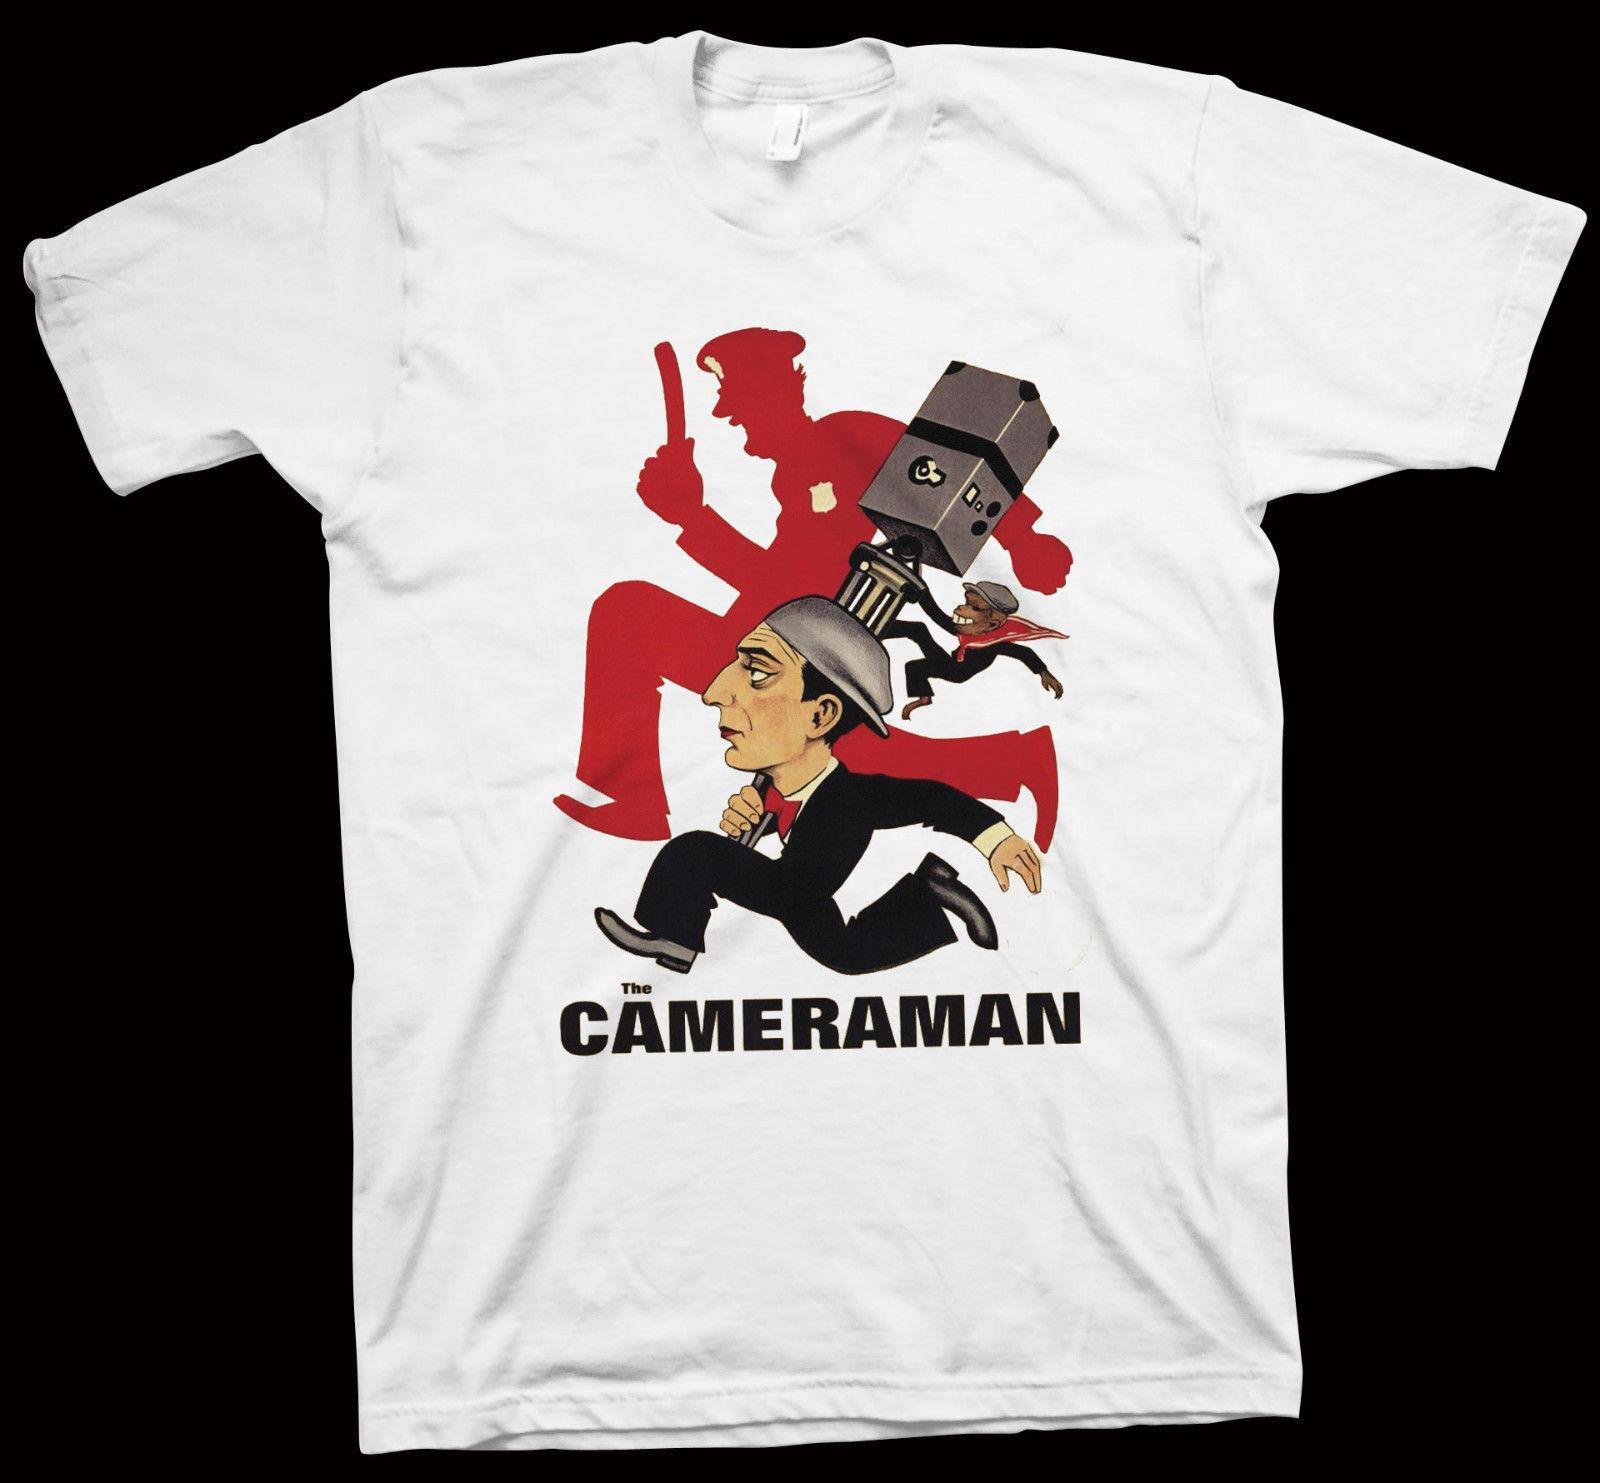 The Cameraman T-Shirt Edward Sedgwick, Buster Keaton, Cinema, Hollywood, Film